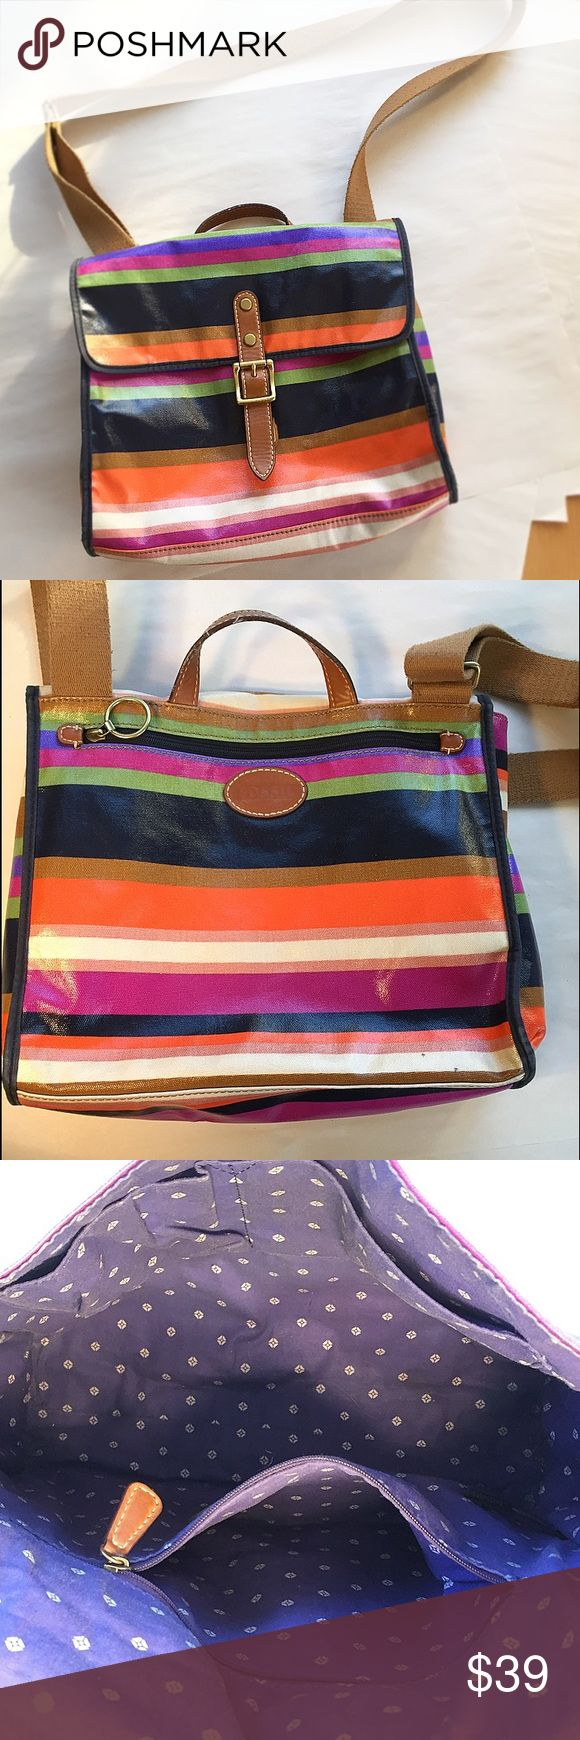 Fossil rainbow stripe shoulder bag This practical and adorable Fossil shoulder bag . Used a few times, very clean and in excellent condition! (See photos) Fossil Bags Shoulder Bags